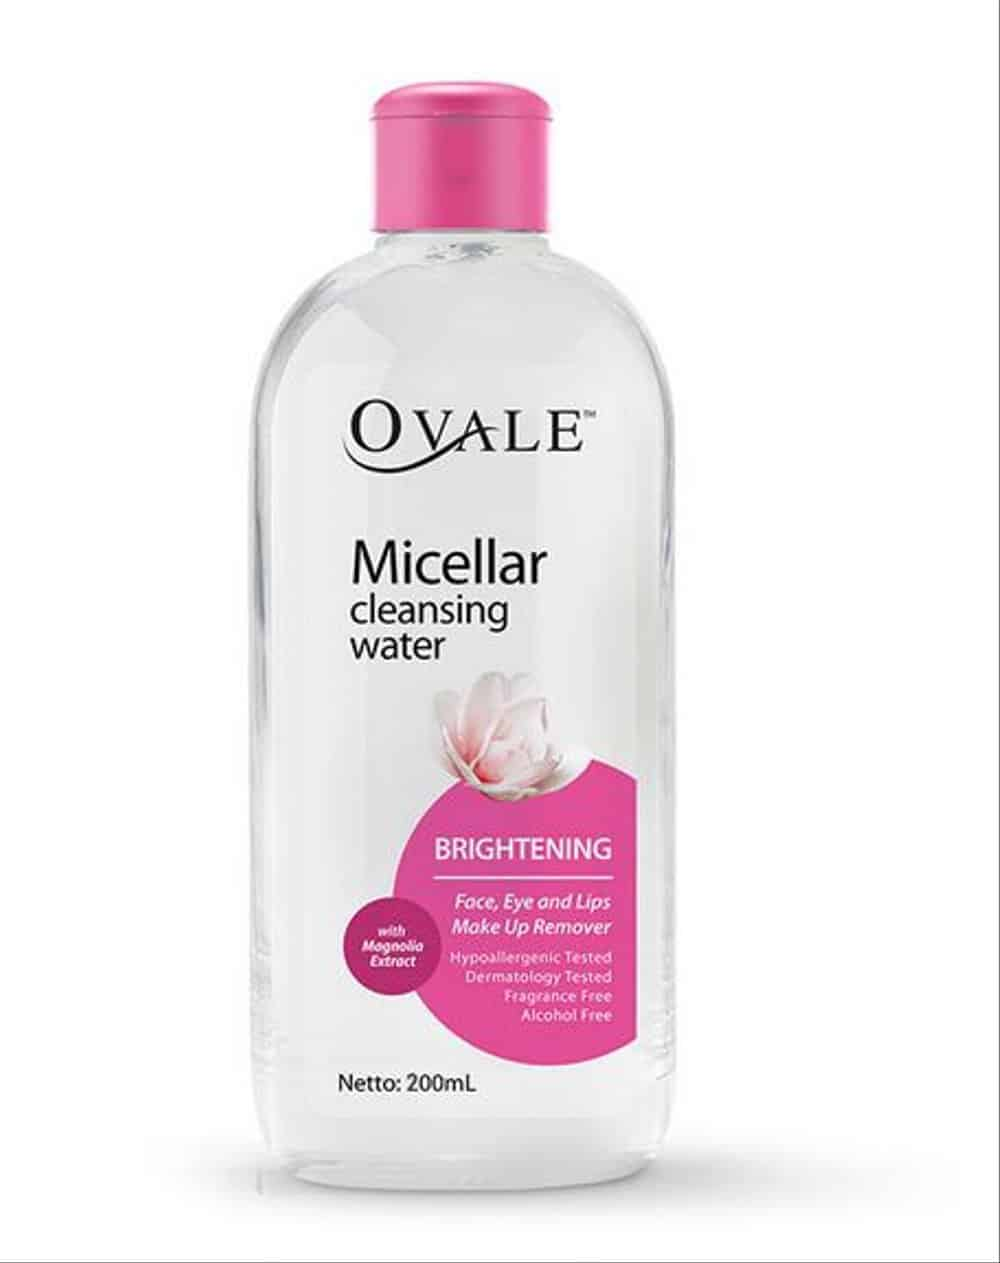 OVALE-Micellar-Cleansing-Water